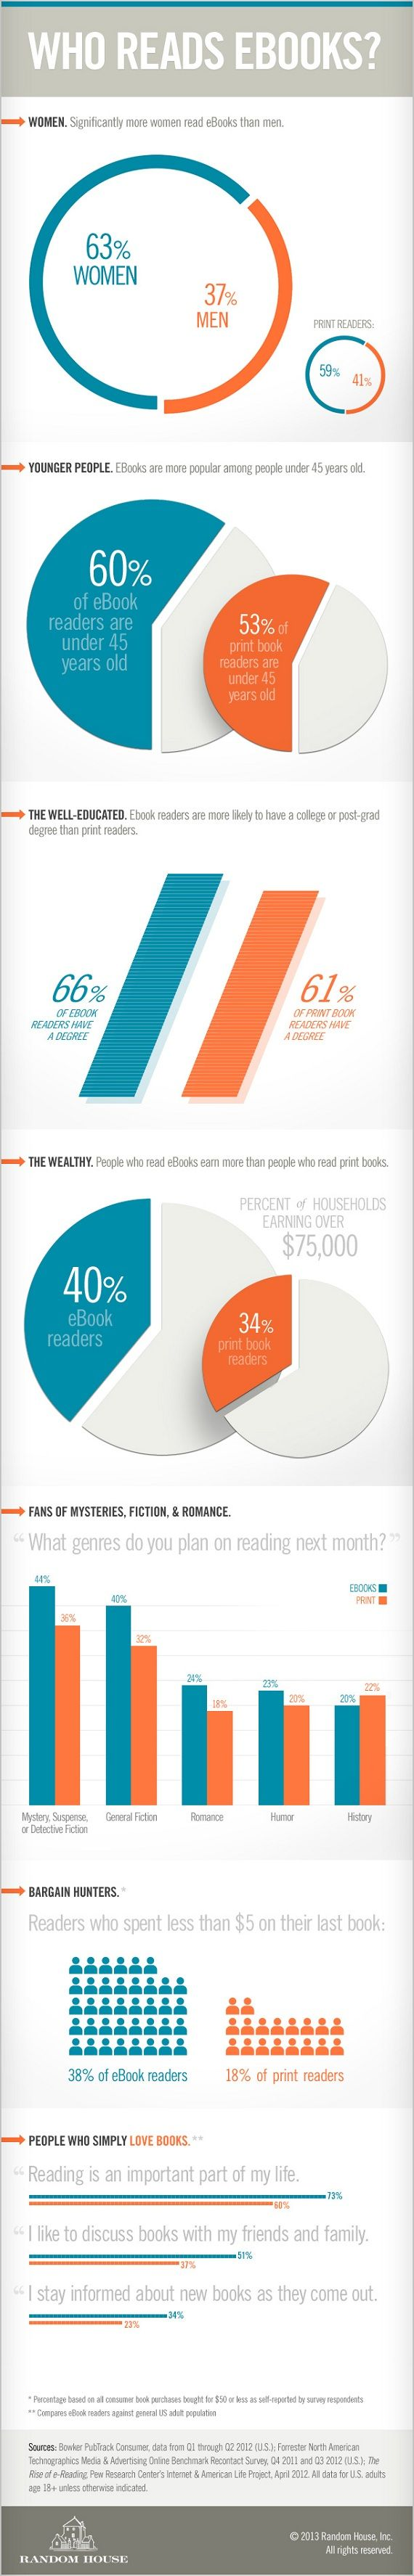 Who Is The Ebook Consumer In 2012 And What Are Their Reading Habits? We  Asked The Random House Research And Analytics Team For Their Insights On  The People